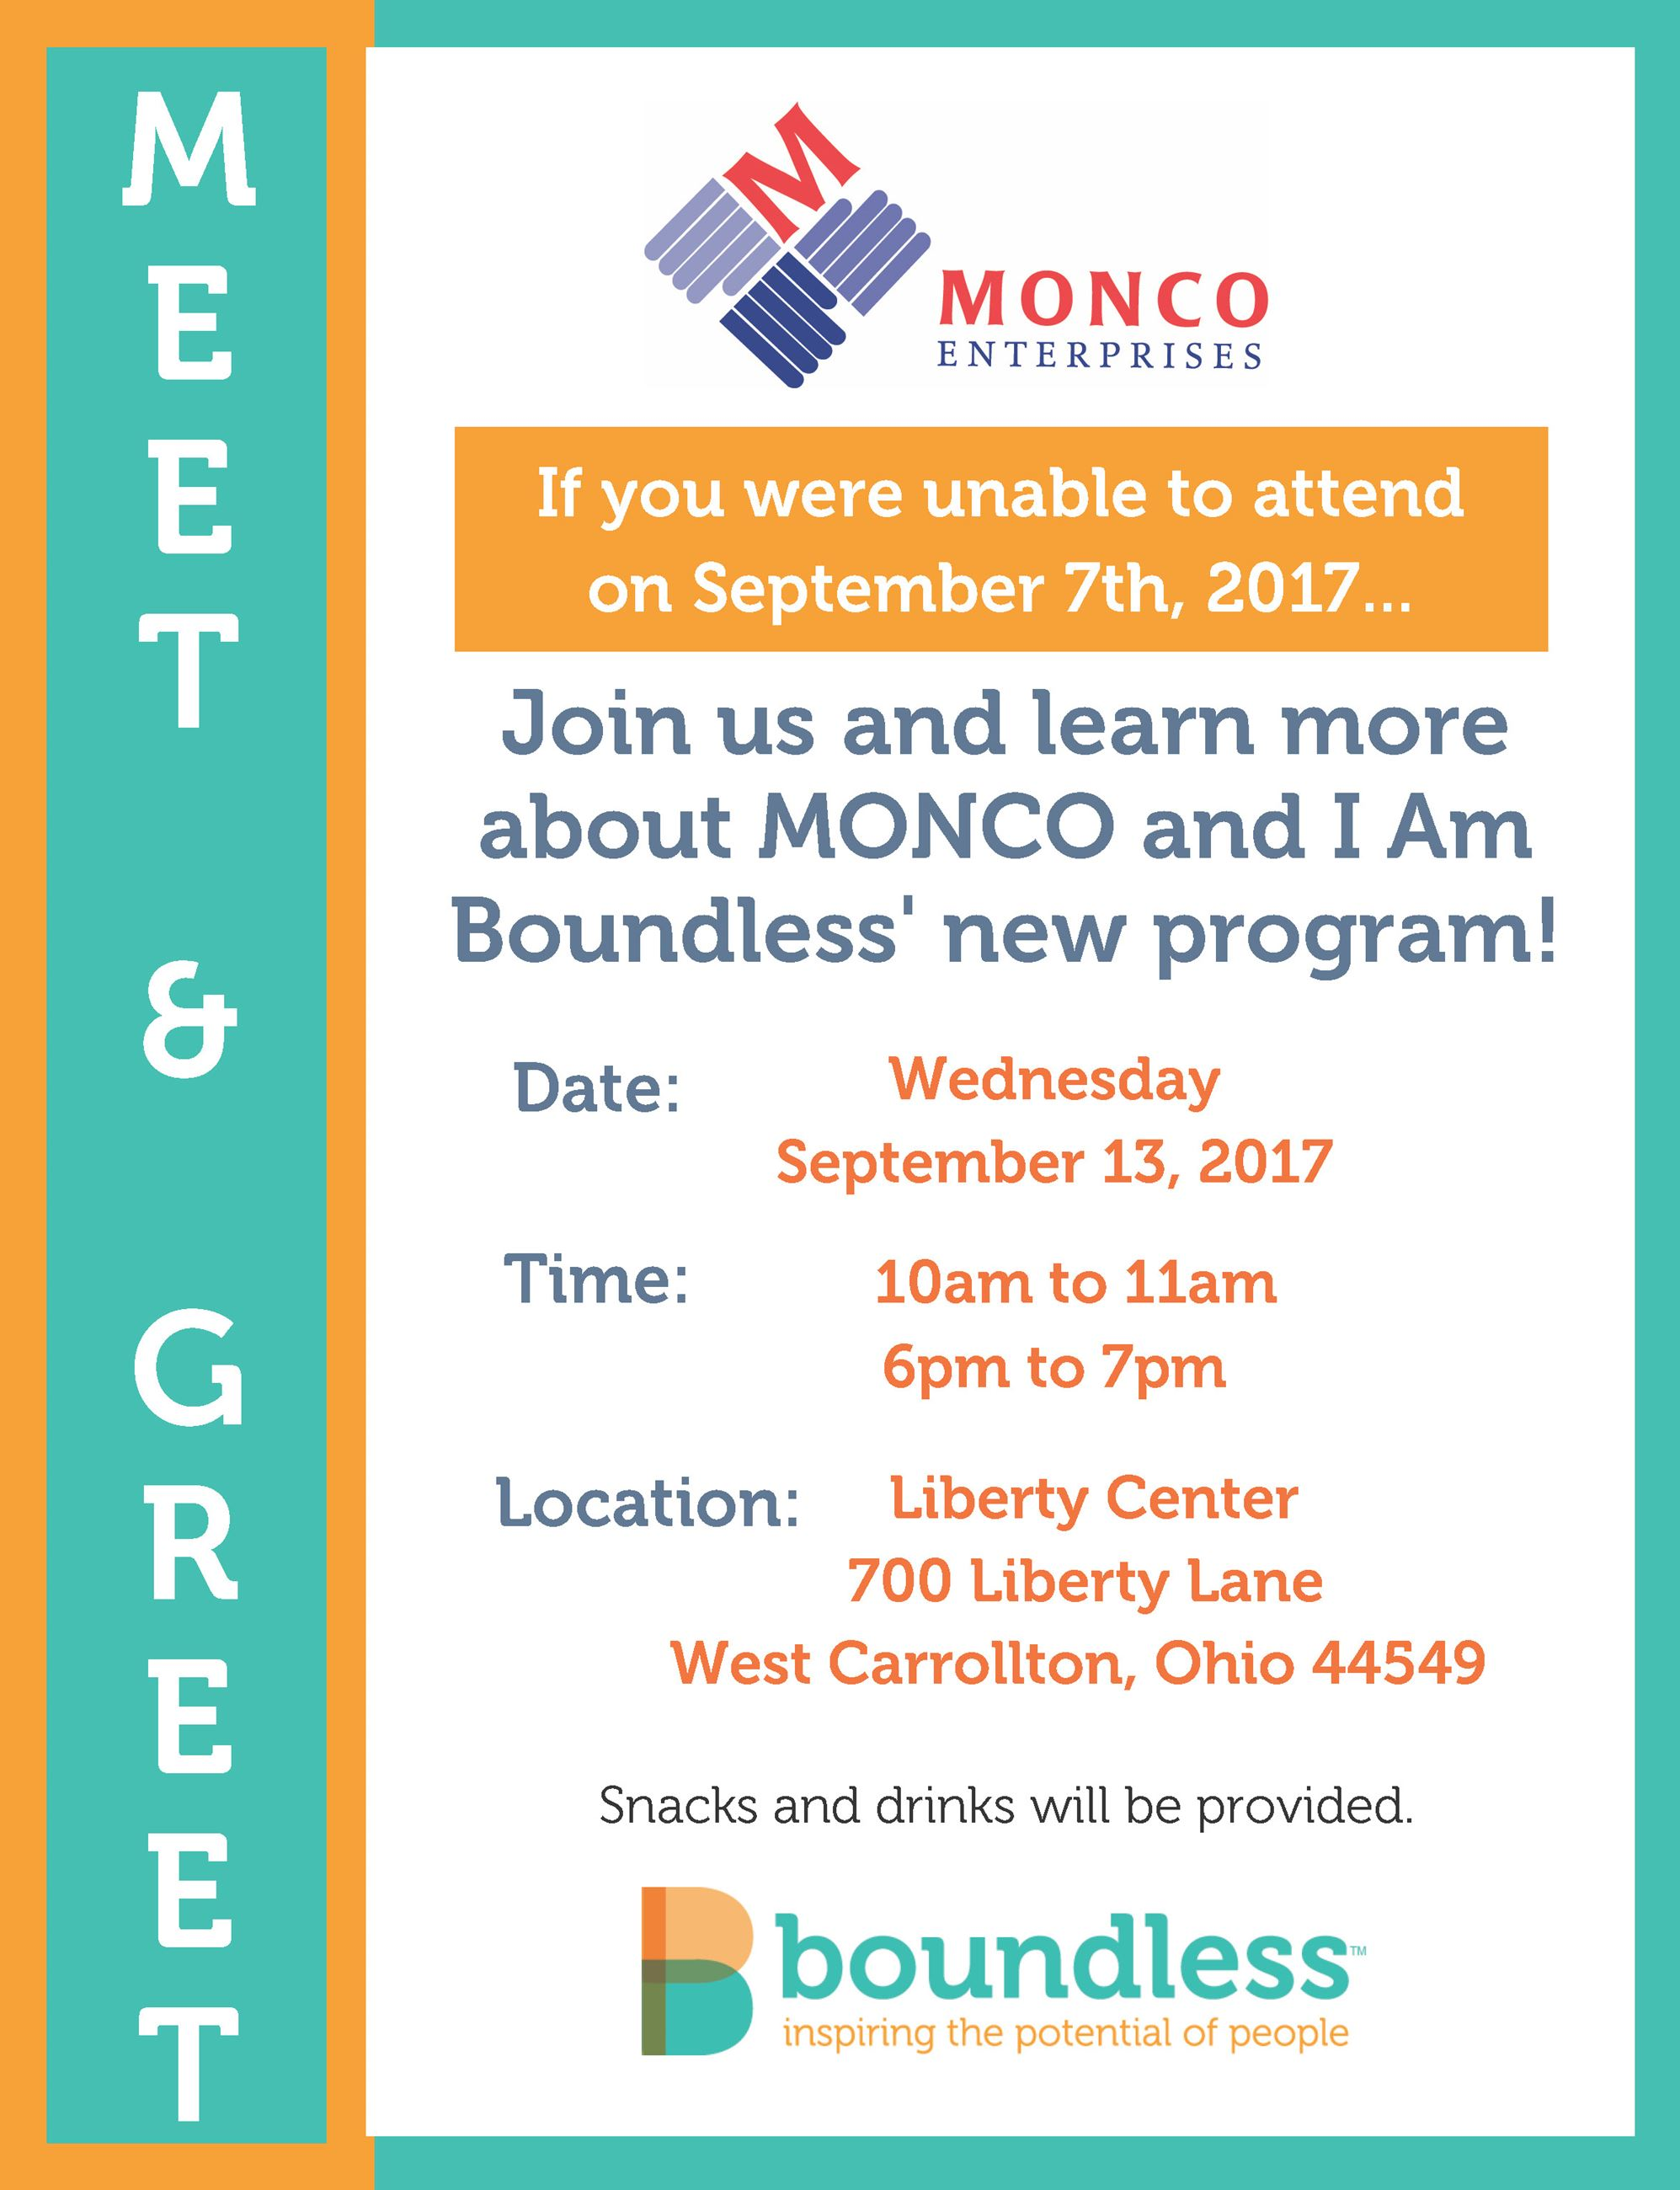 Monco-Boundless Meet and Greet Event Sept 13